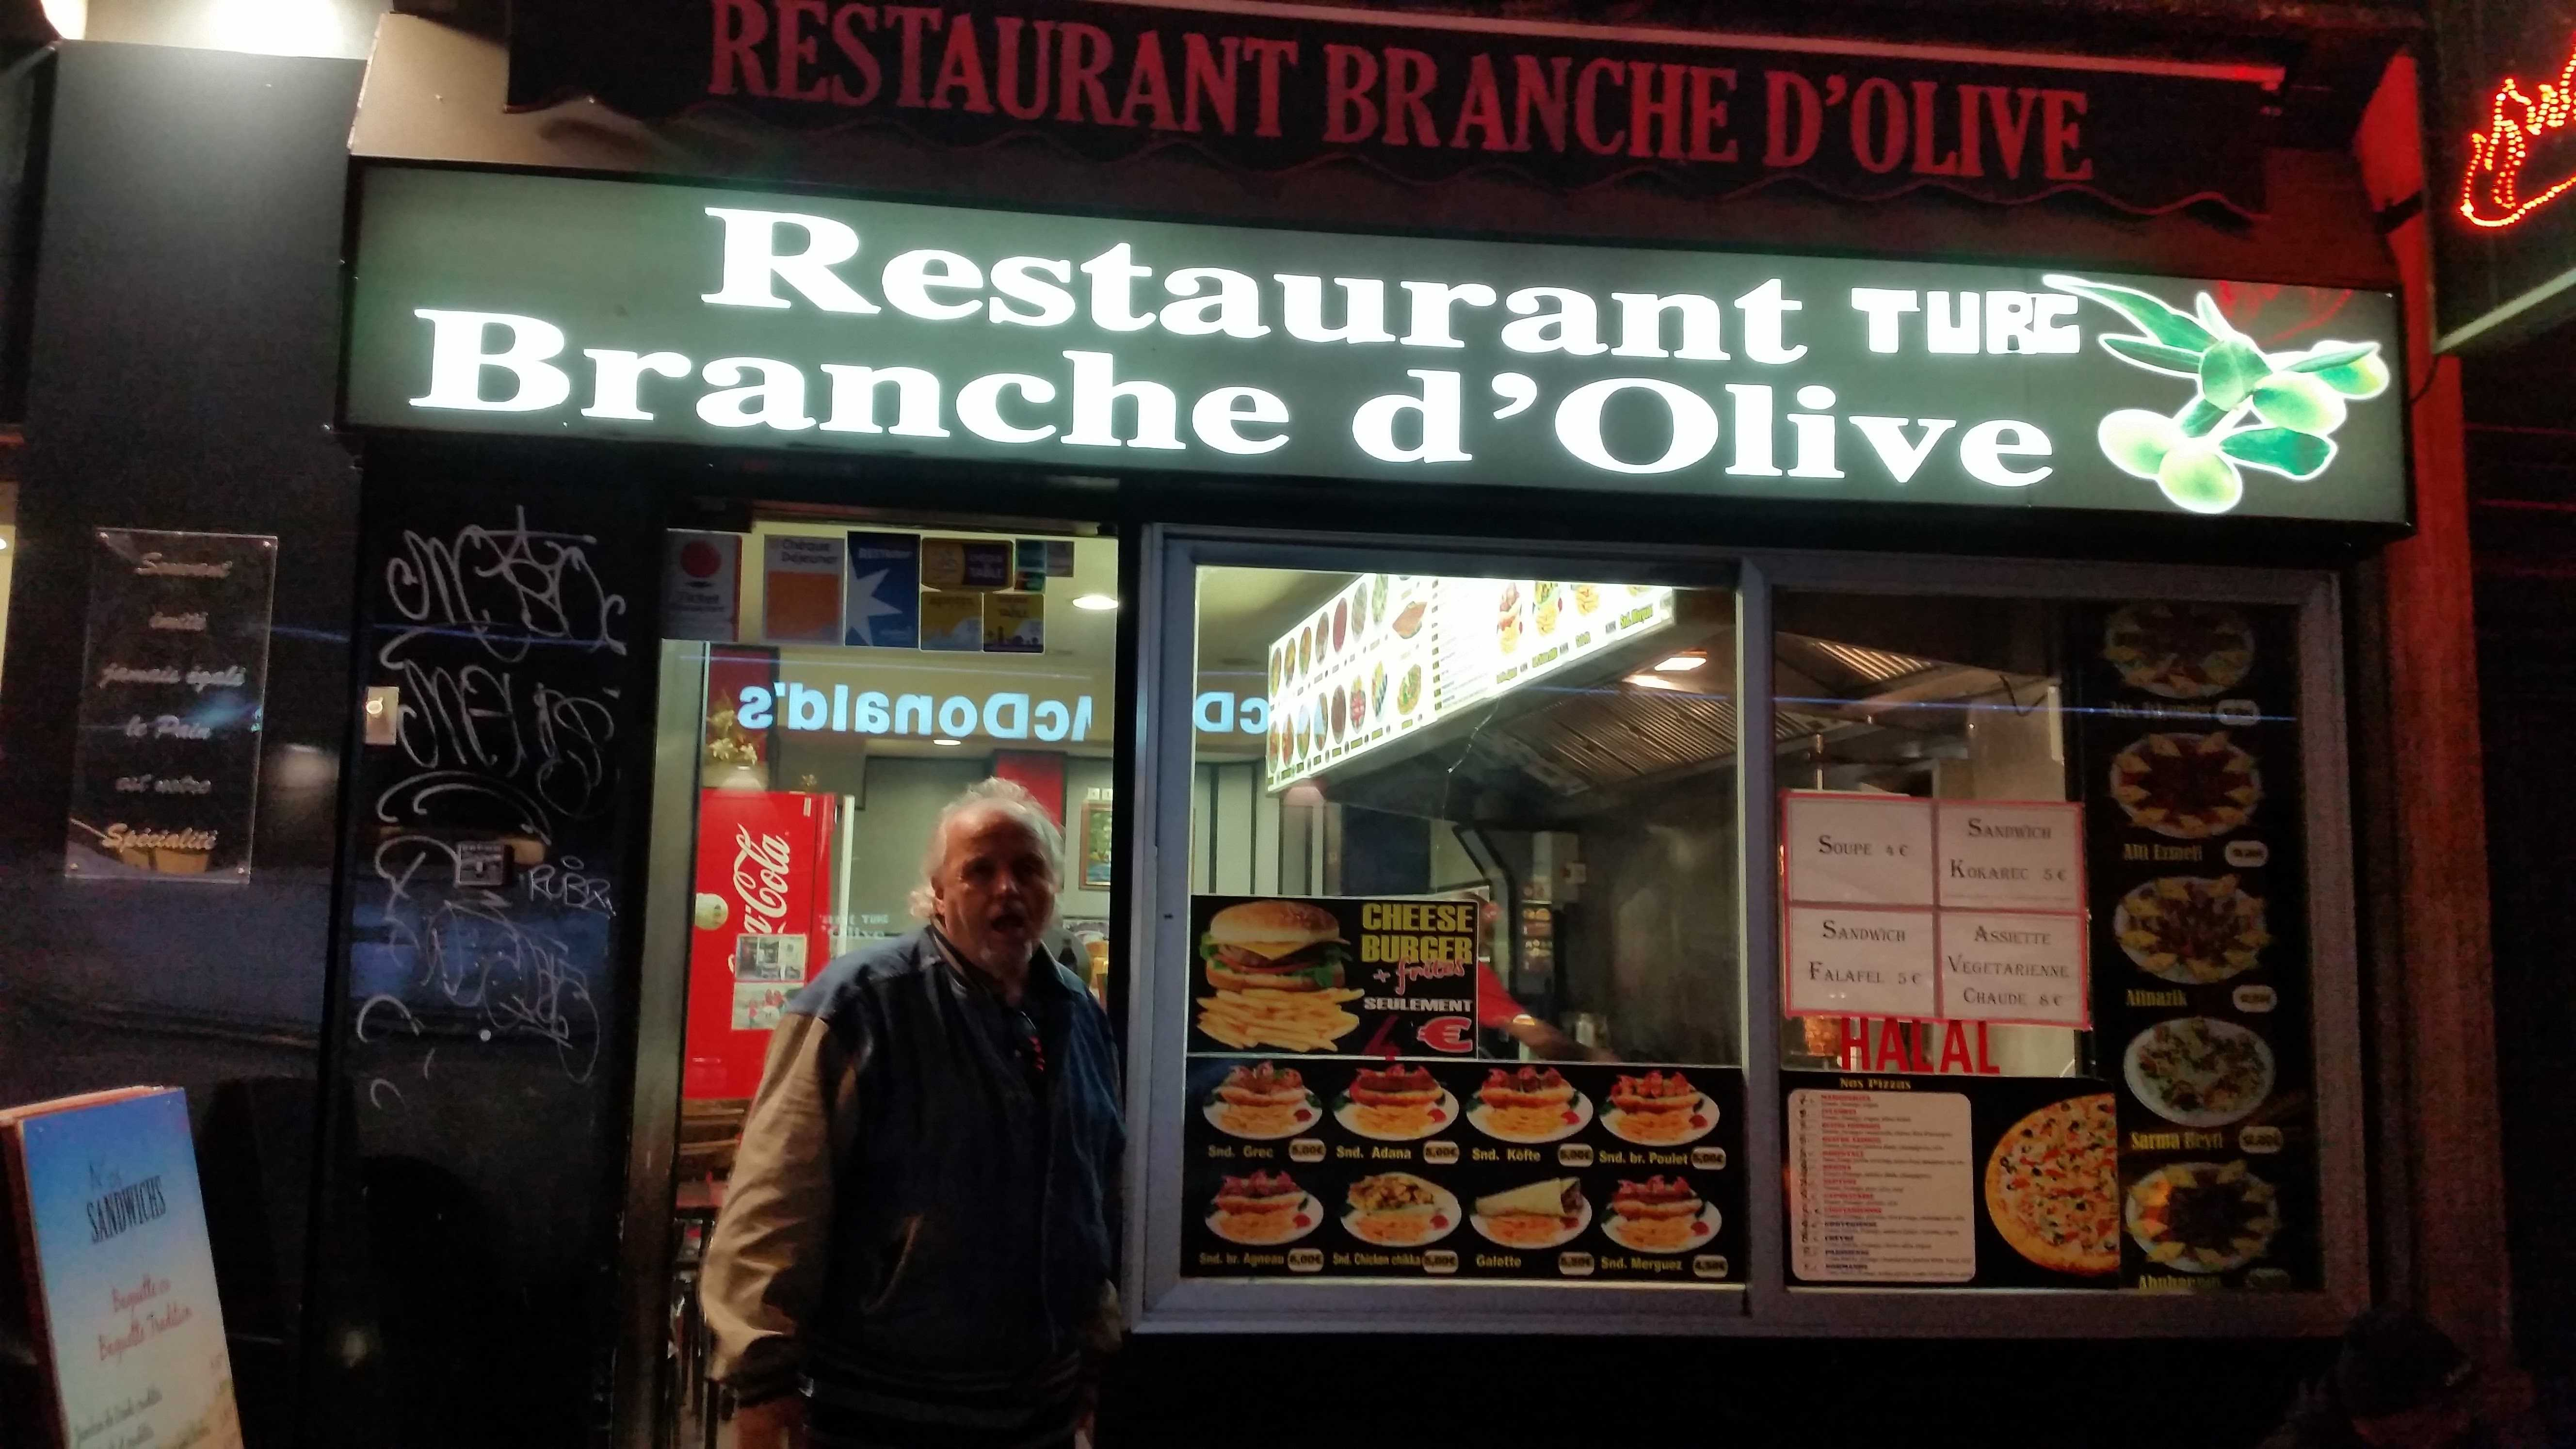 The Olive Branch in Paris